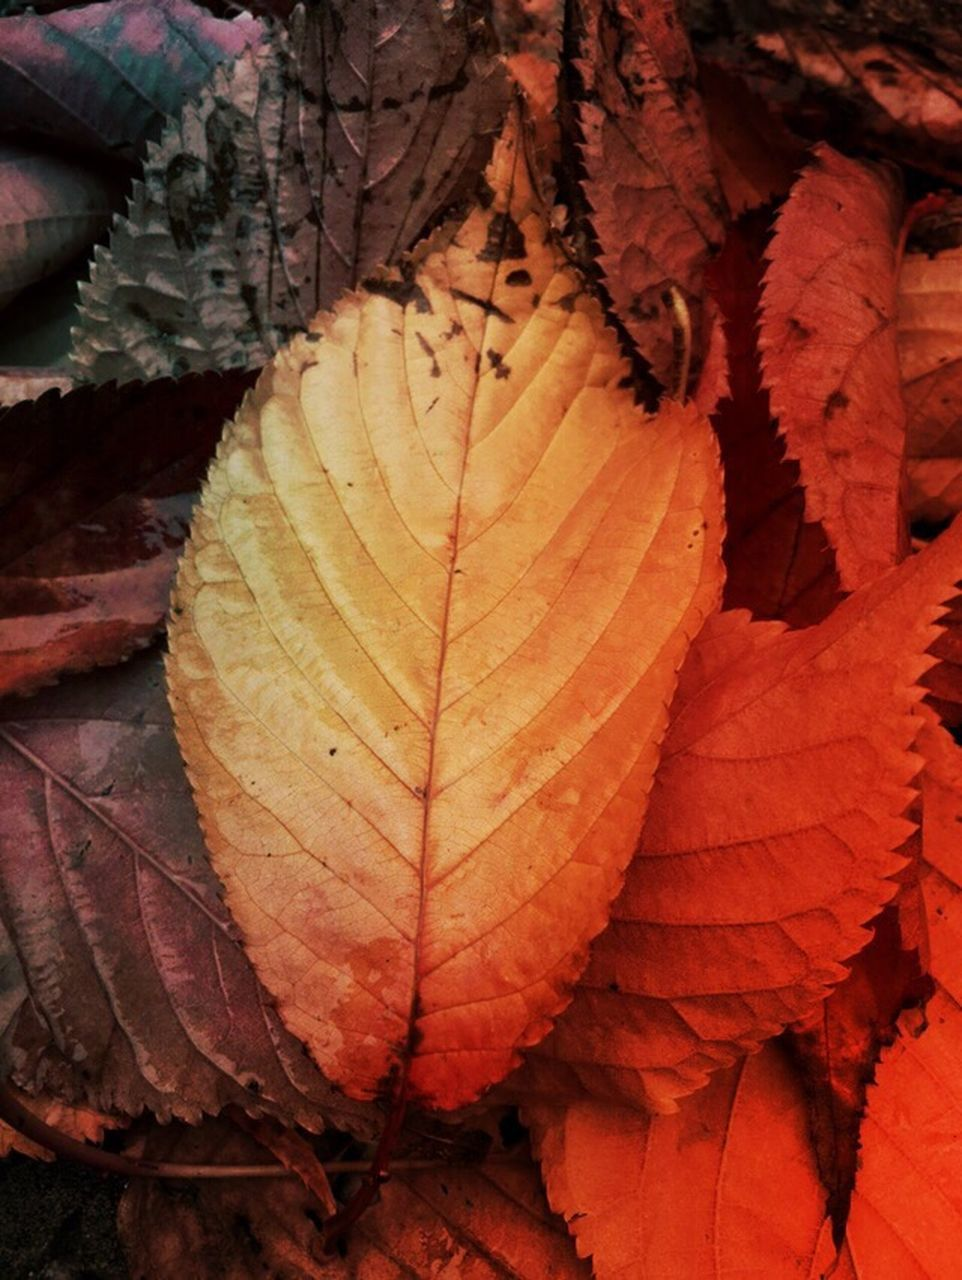 leaf, autumn, change, dry, nature, day, outdoors, no people, close-up, maple, maple leaf, beauty in nature